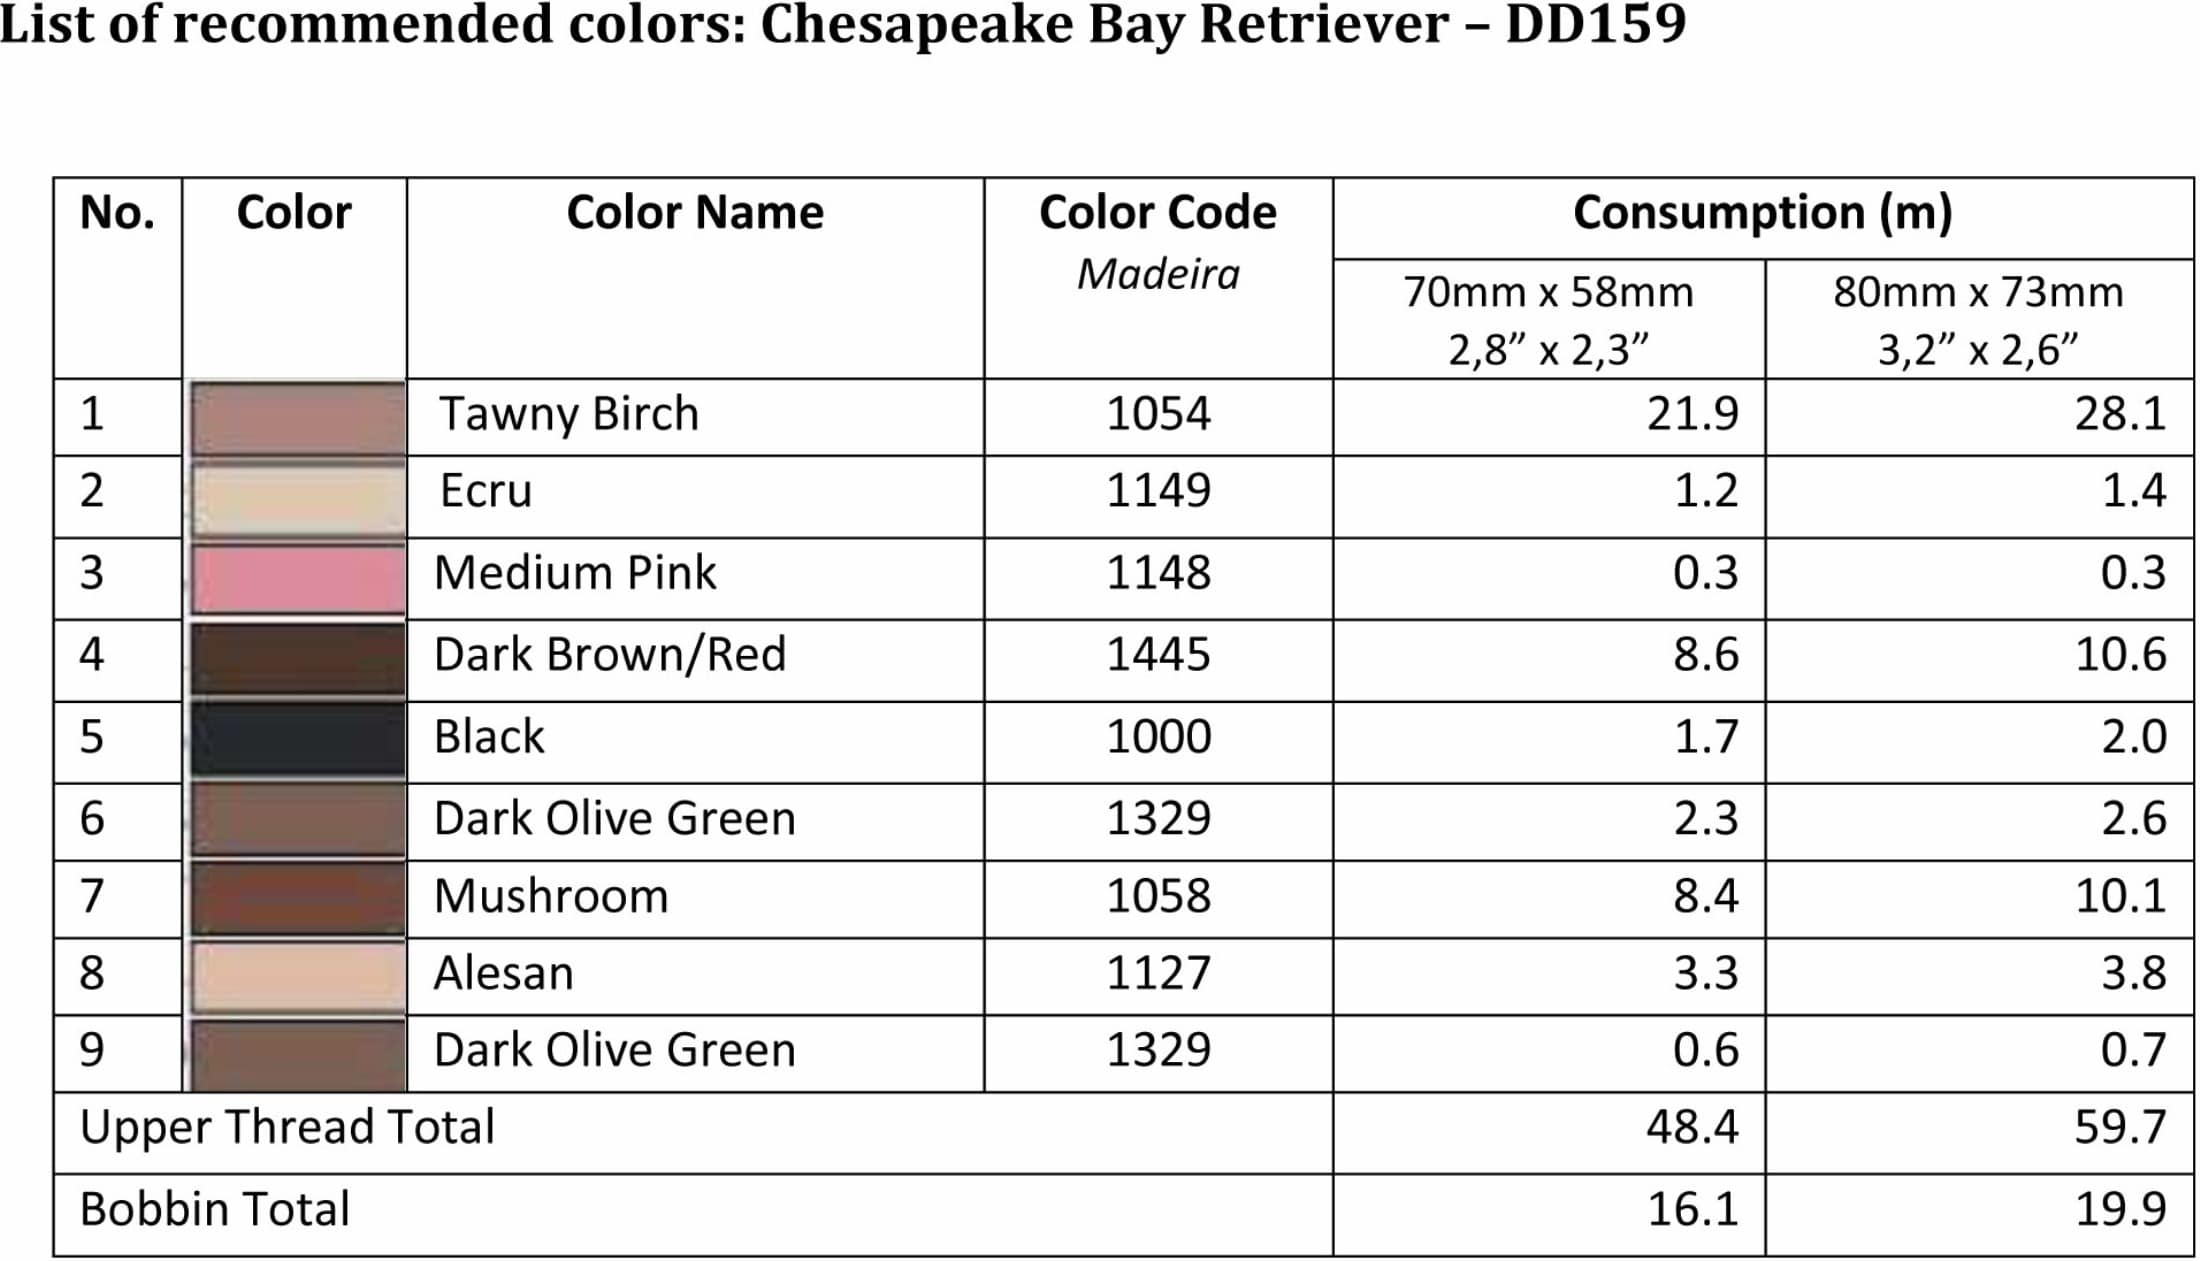 List of recommended colors - DD159